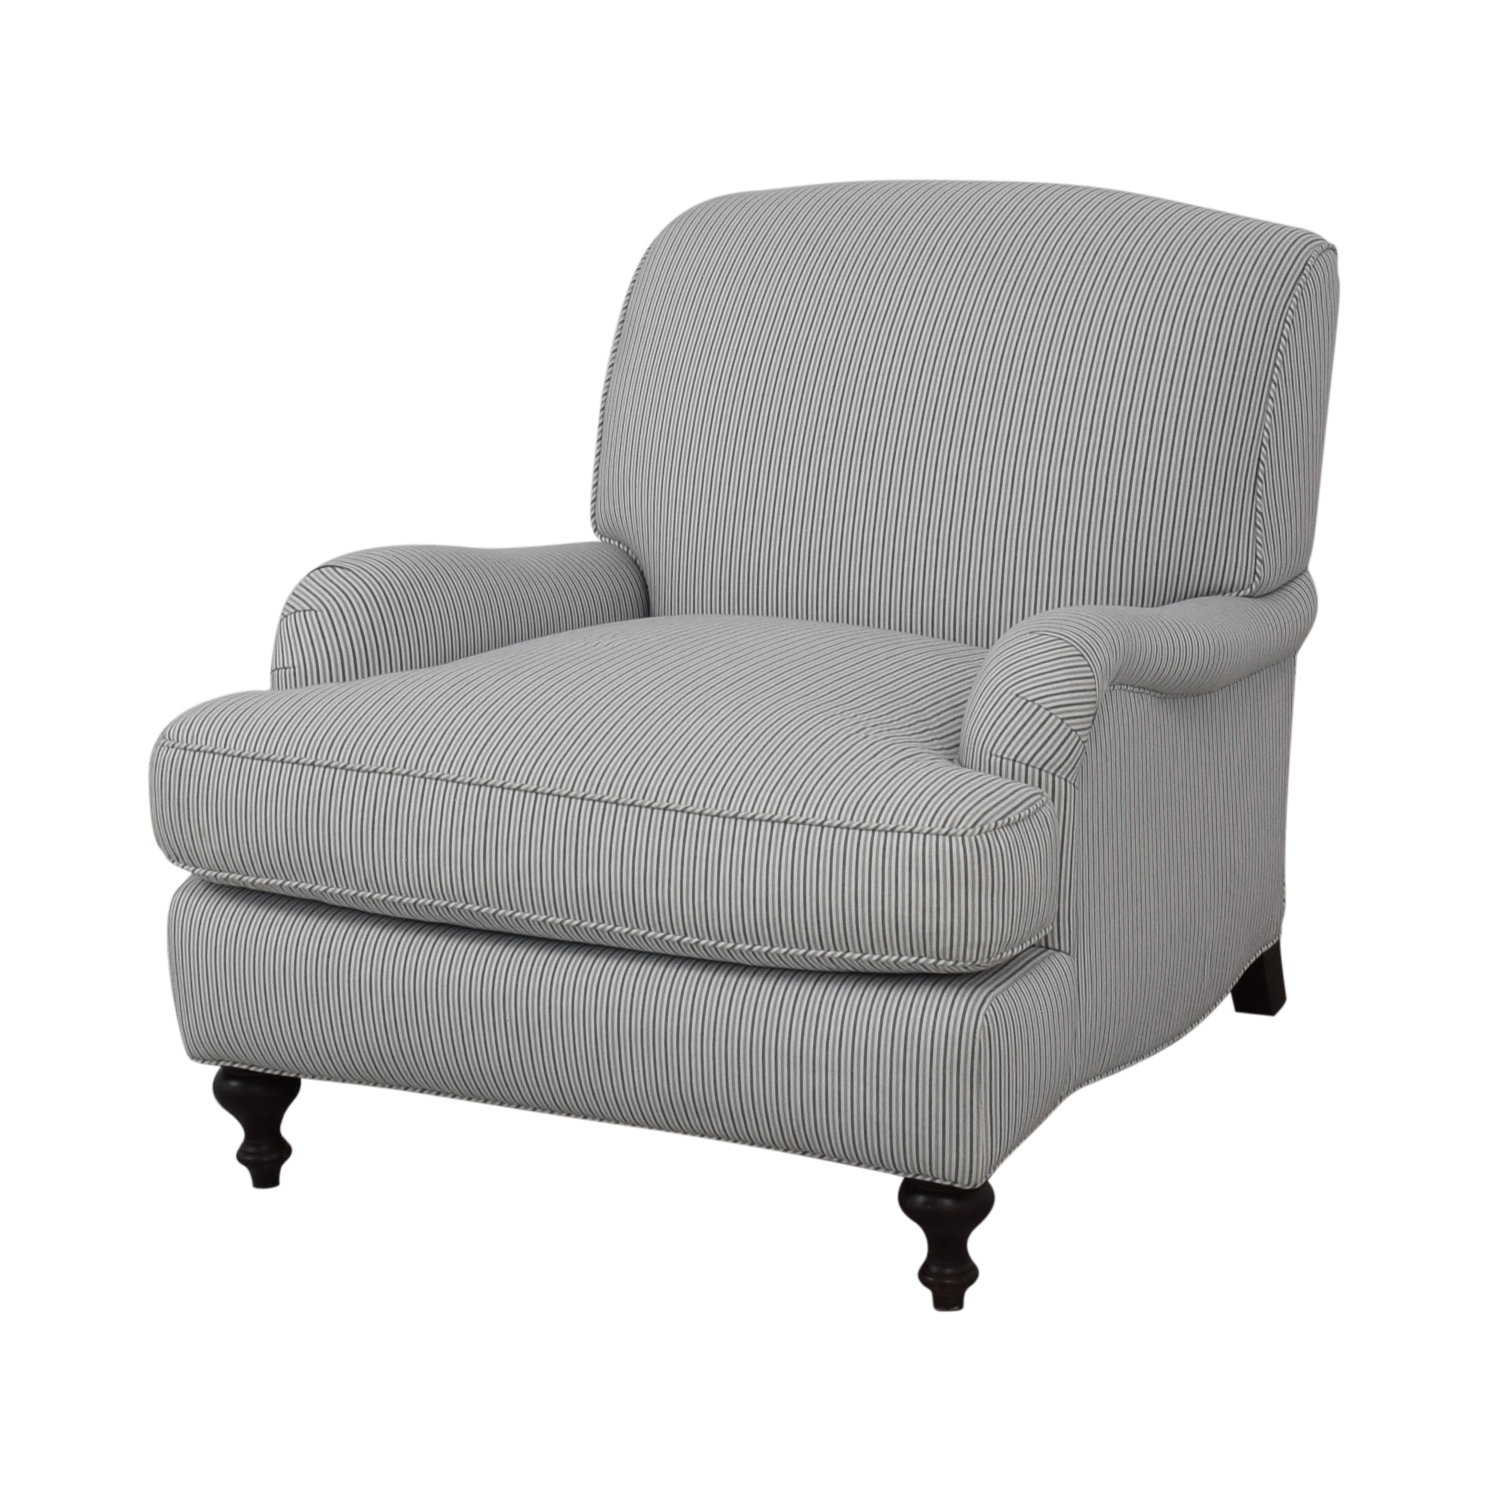 buy Serena & Lily Serena & Lily Miramar Upholstered Side Chair online